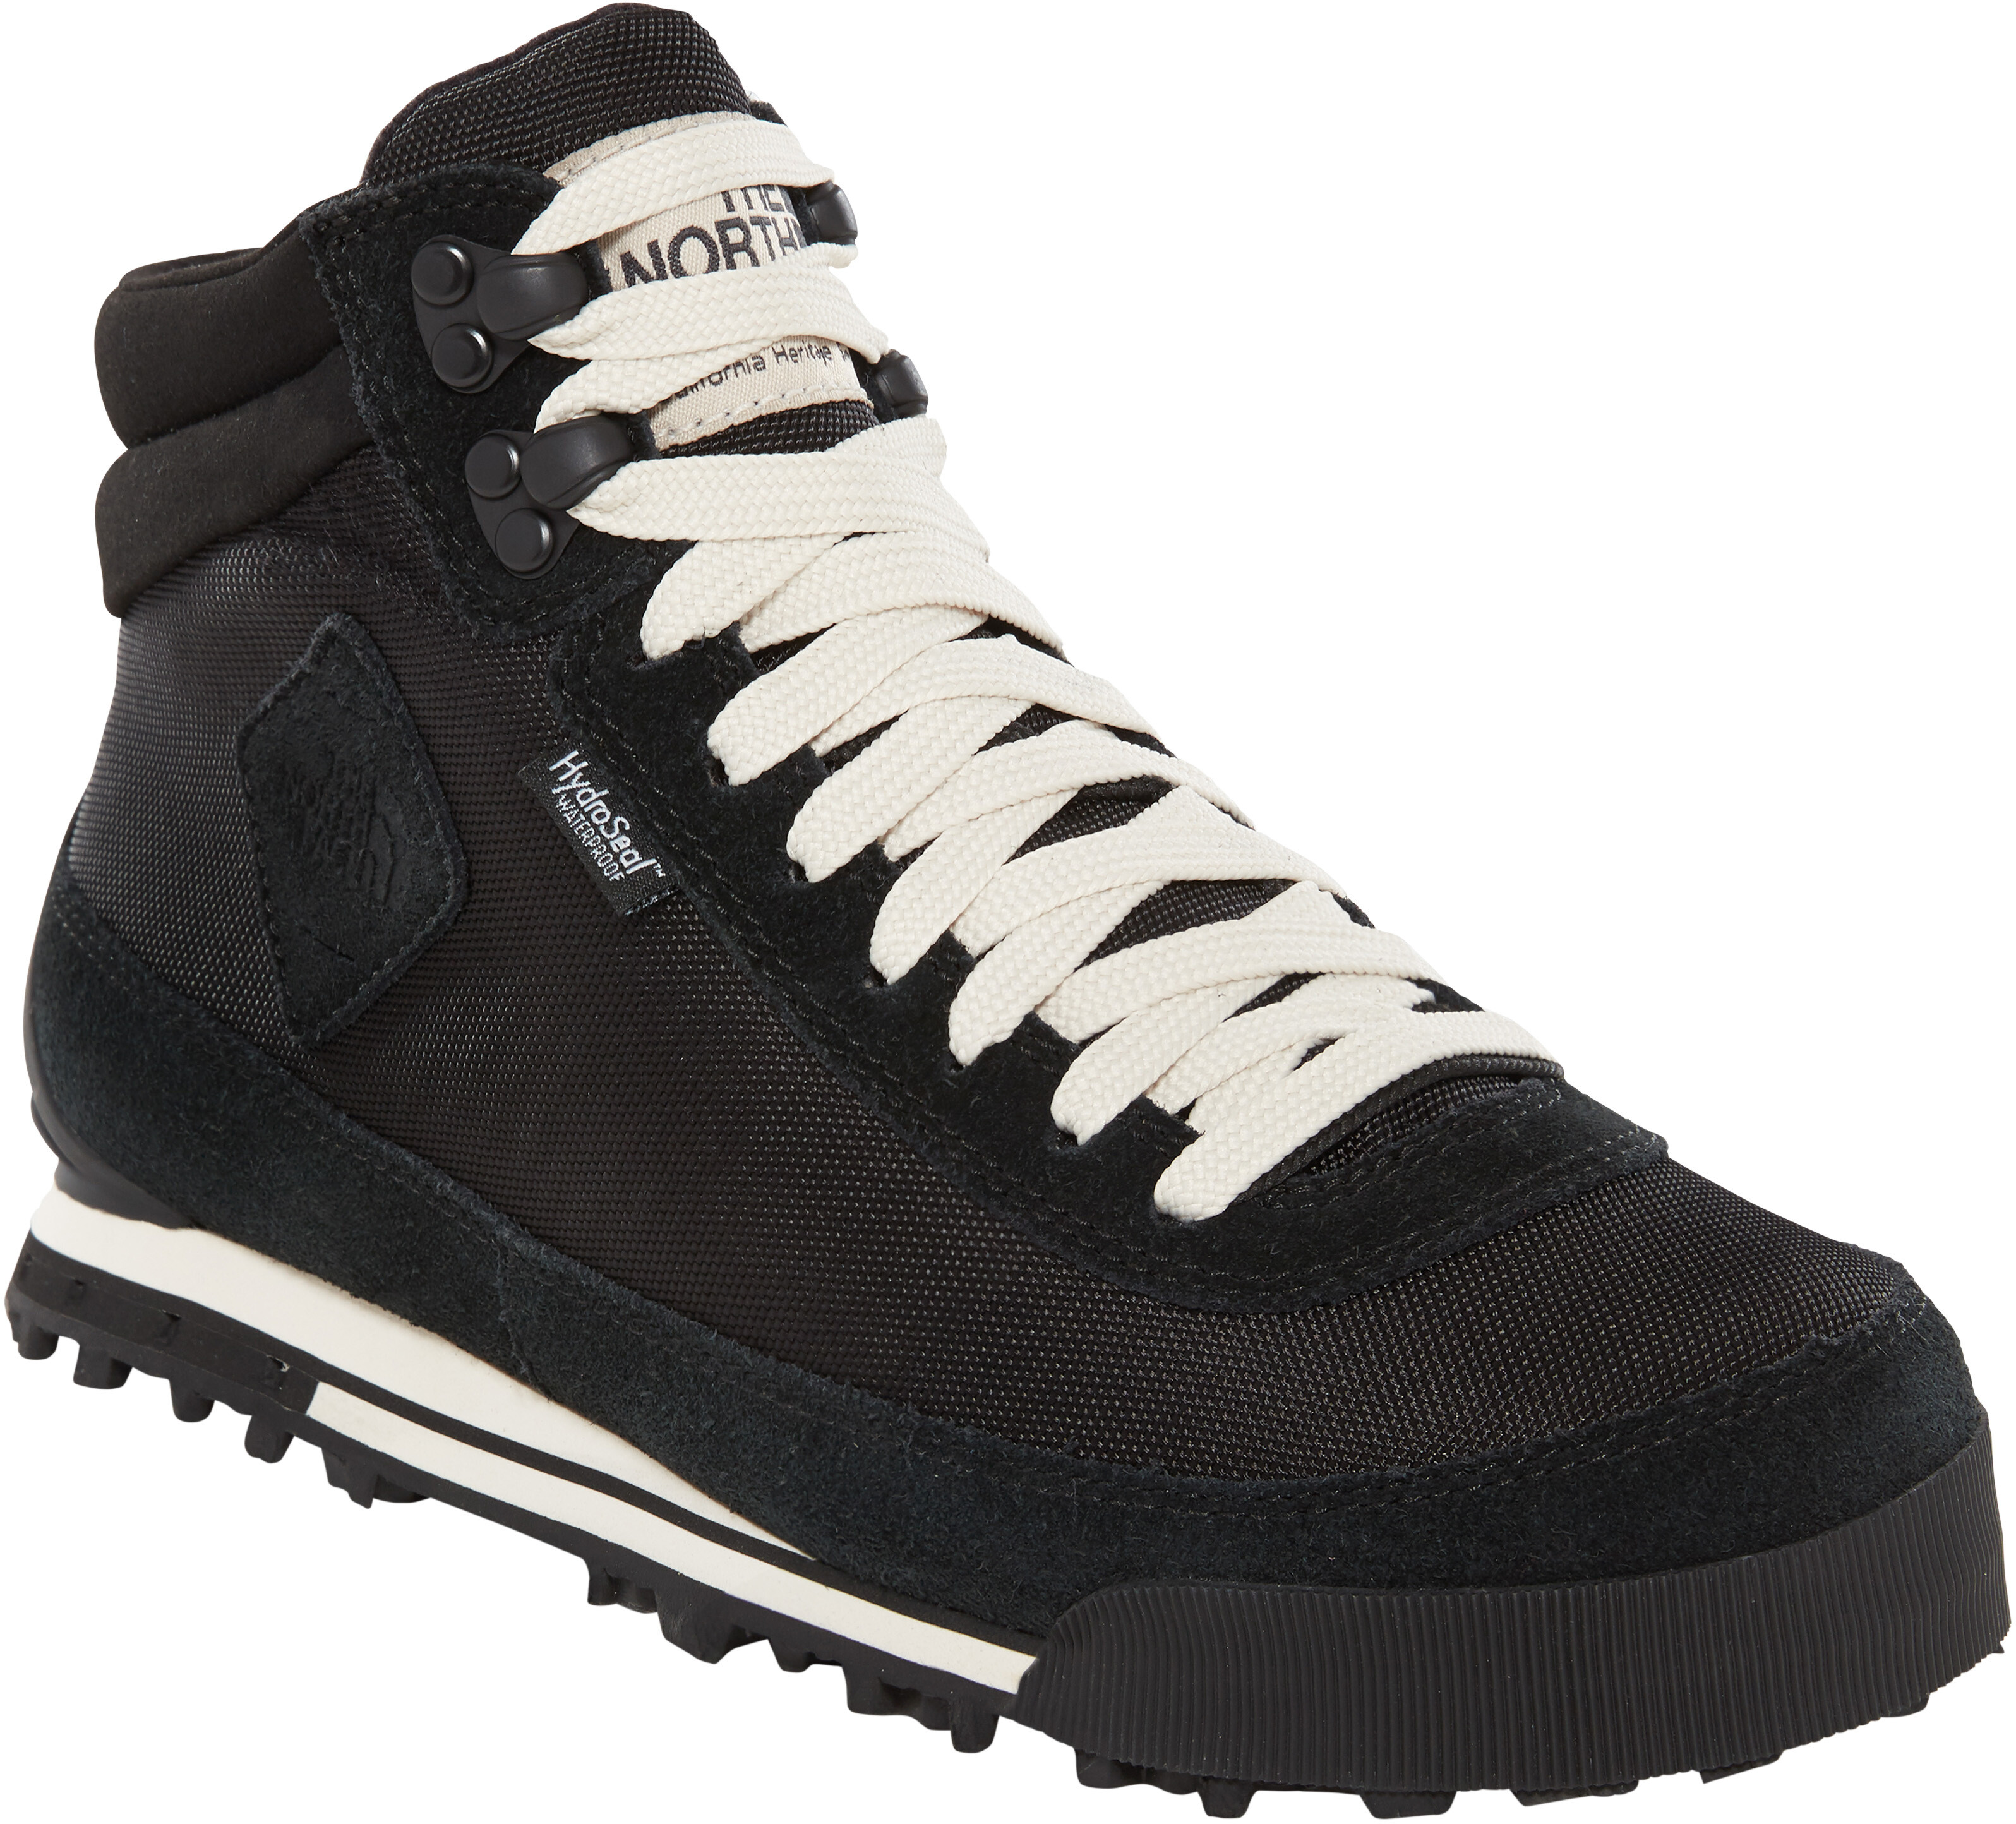 8d9ae8cac The North Face Back-To-Berkeley Boot II Shoes Women tnf black/vintage